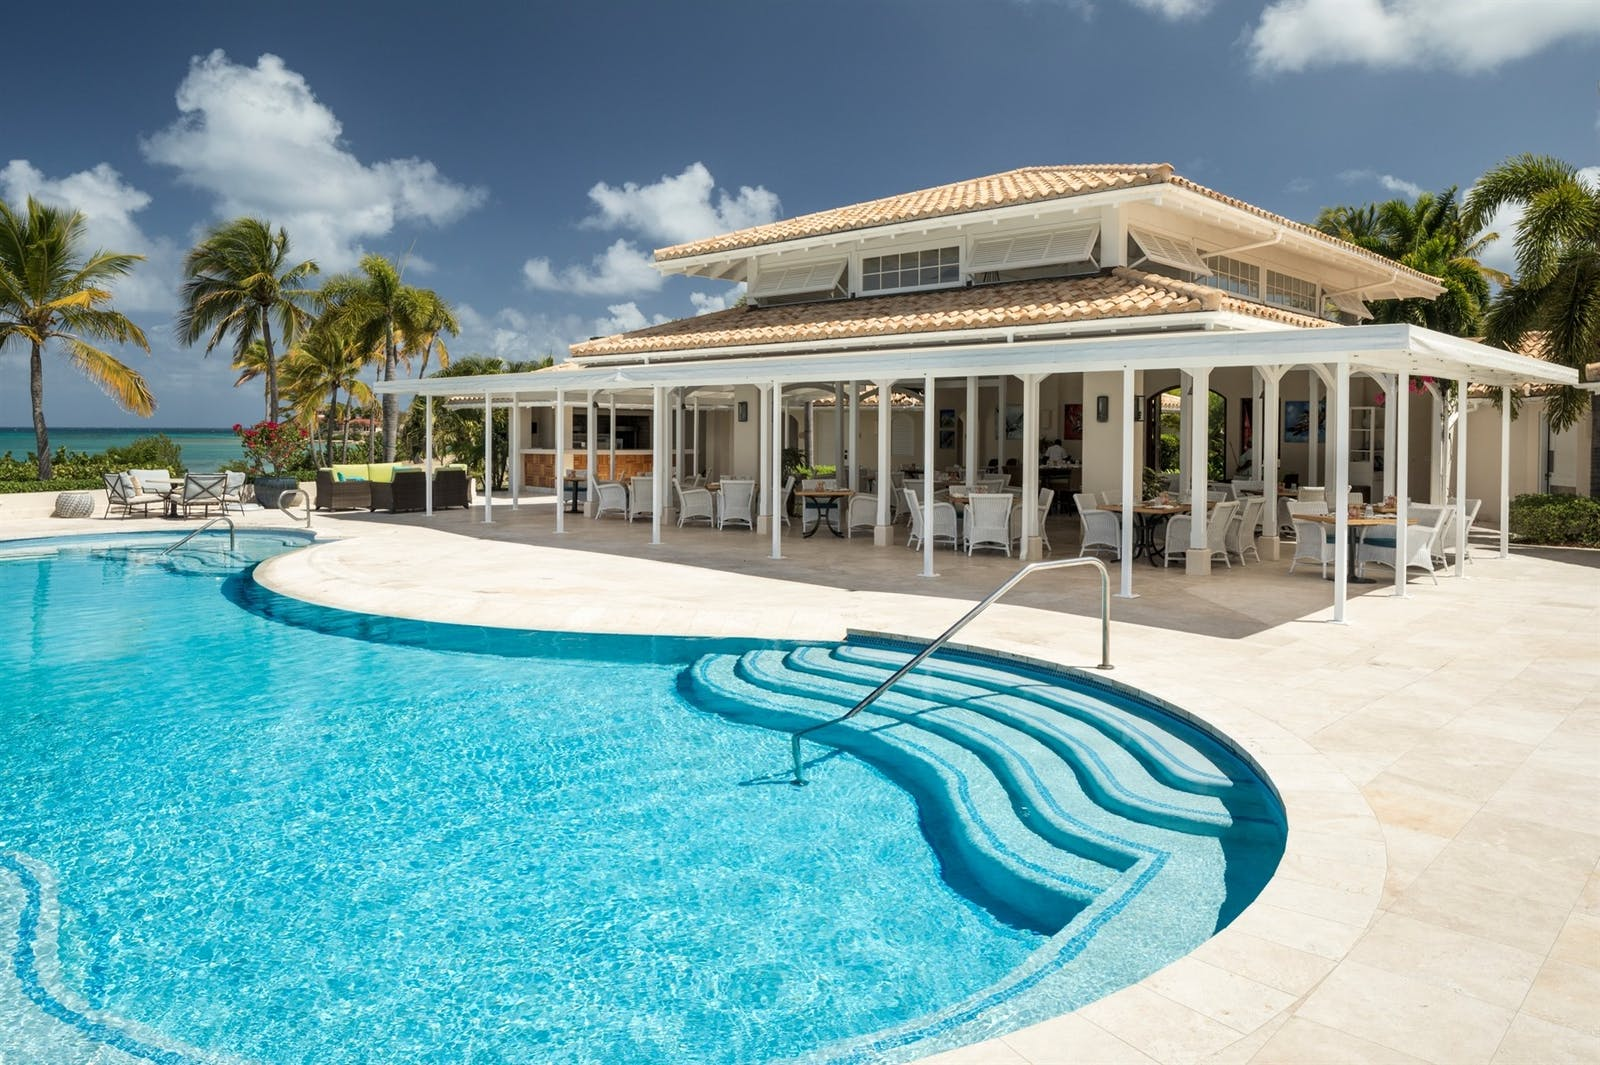 Pool Grille at Jumby Bay Island, Antigua, Caribbean